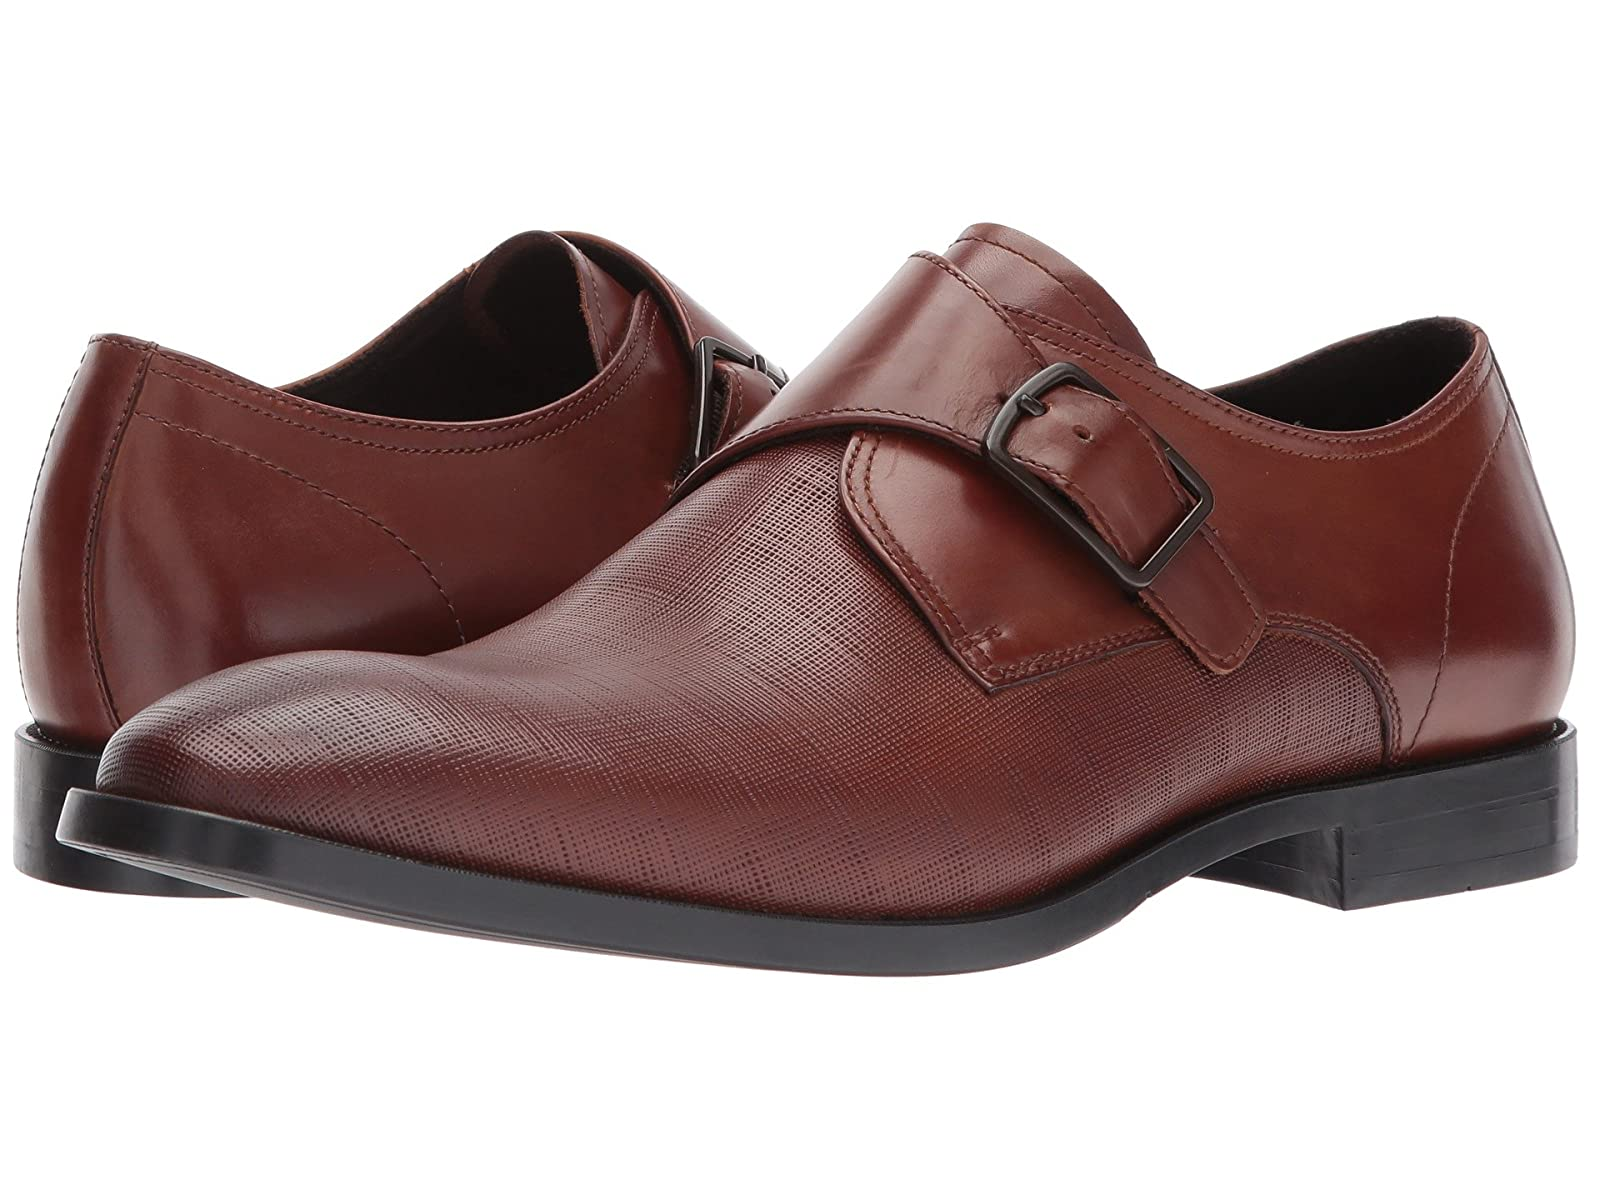 Kenneth Cole New York Golden TicketCheap and distinctive eye-catching shoes